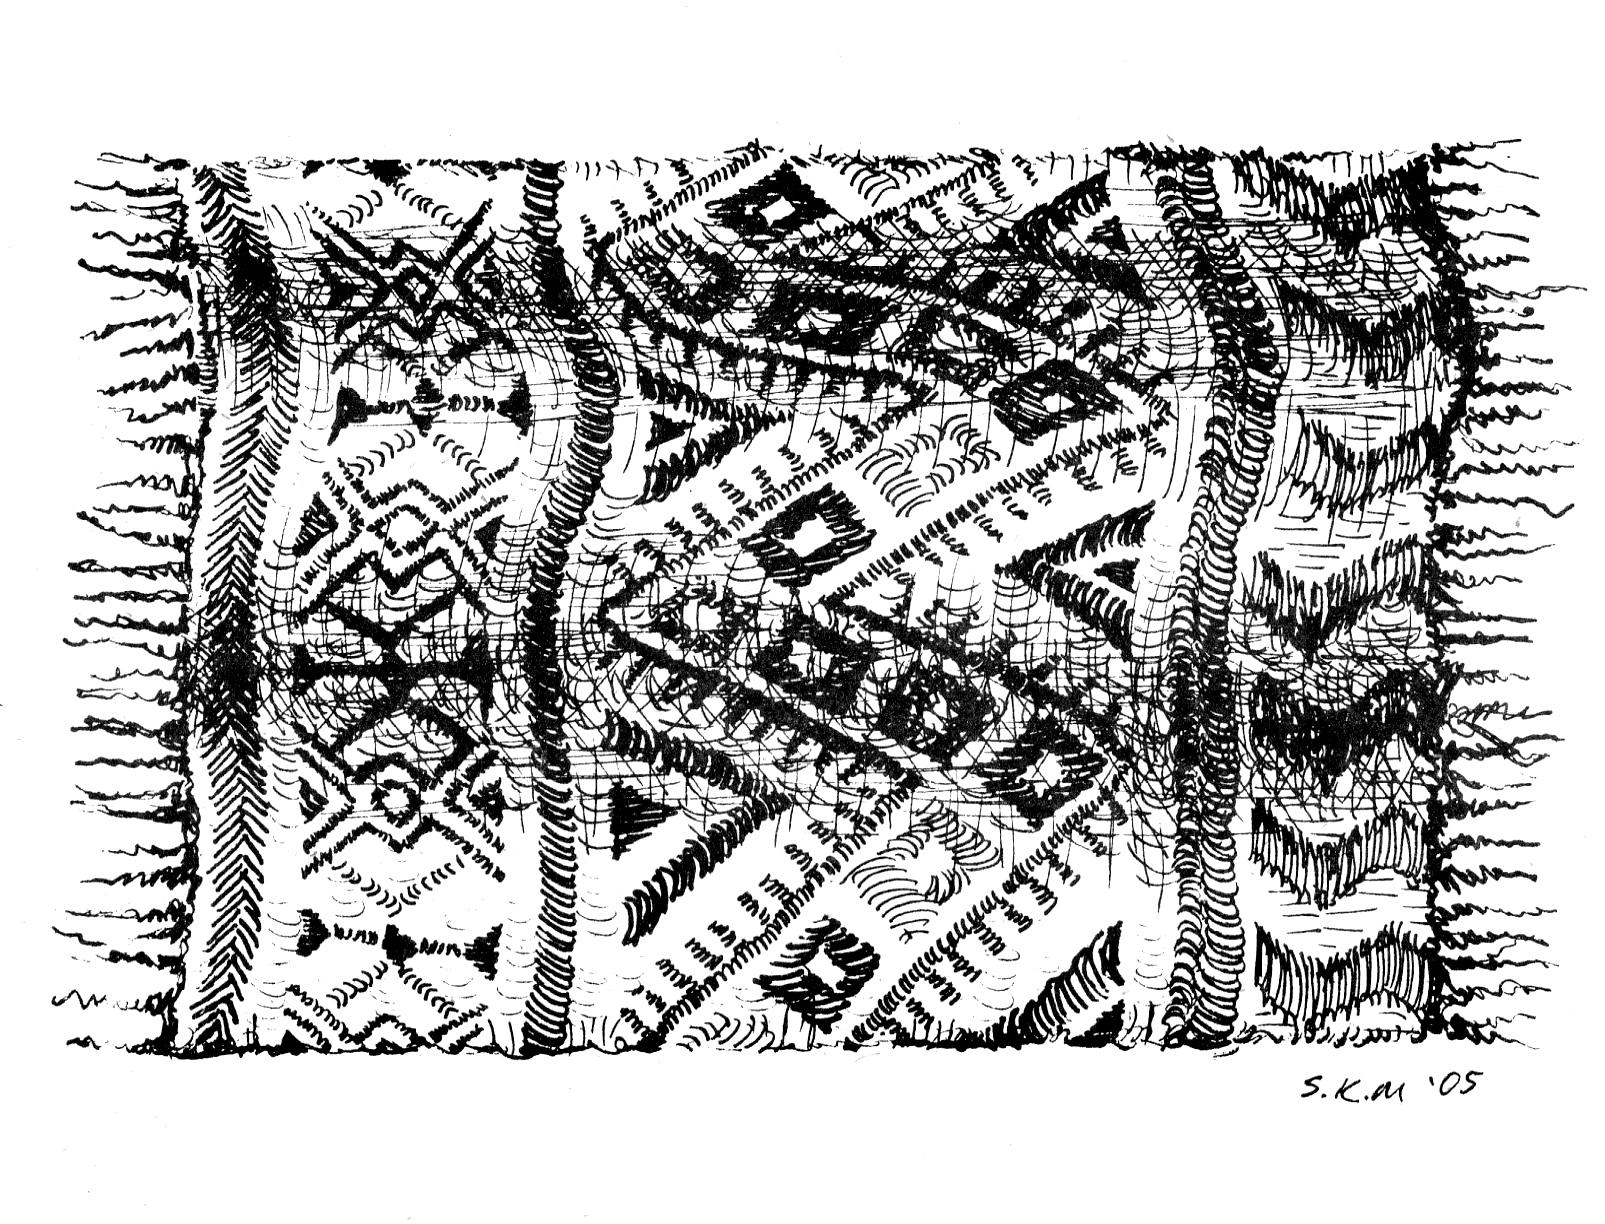 One of Sarah's pen and ink drawings.